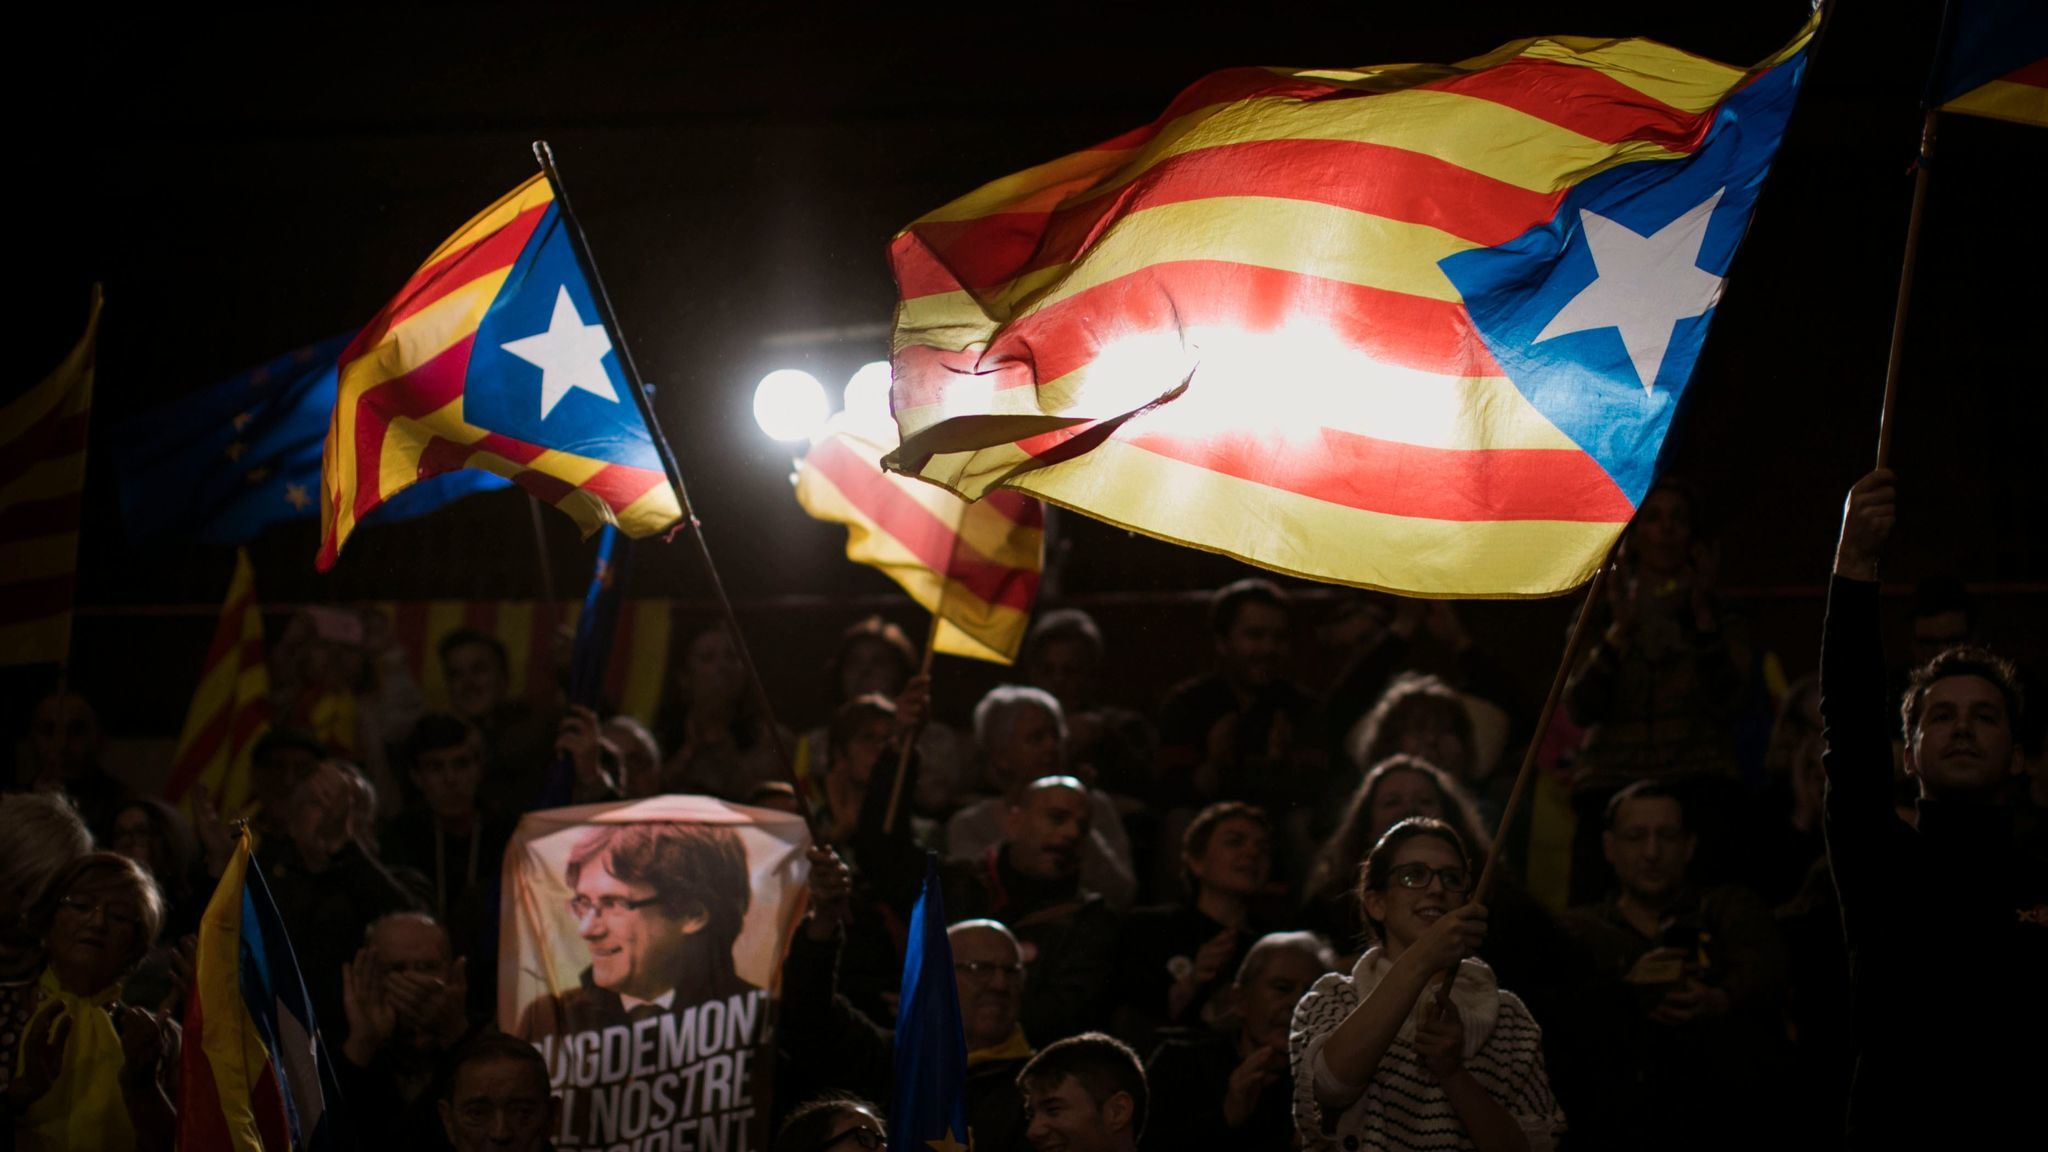 Supporters of ousted Catalan President Carles Puigdemont wave independence flags during the electora